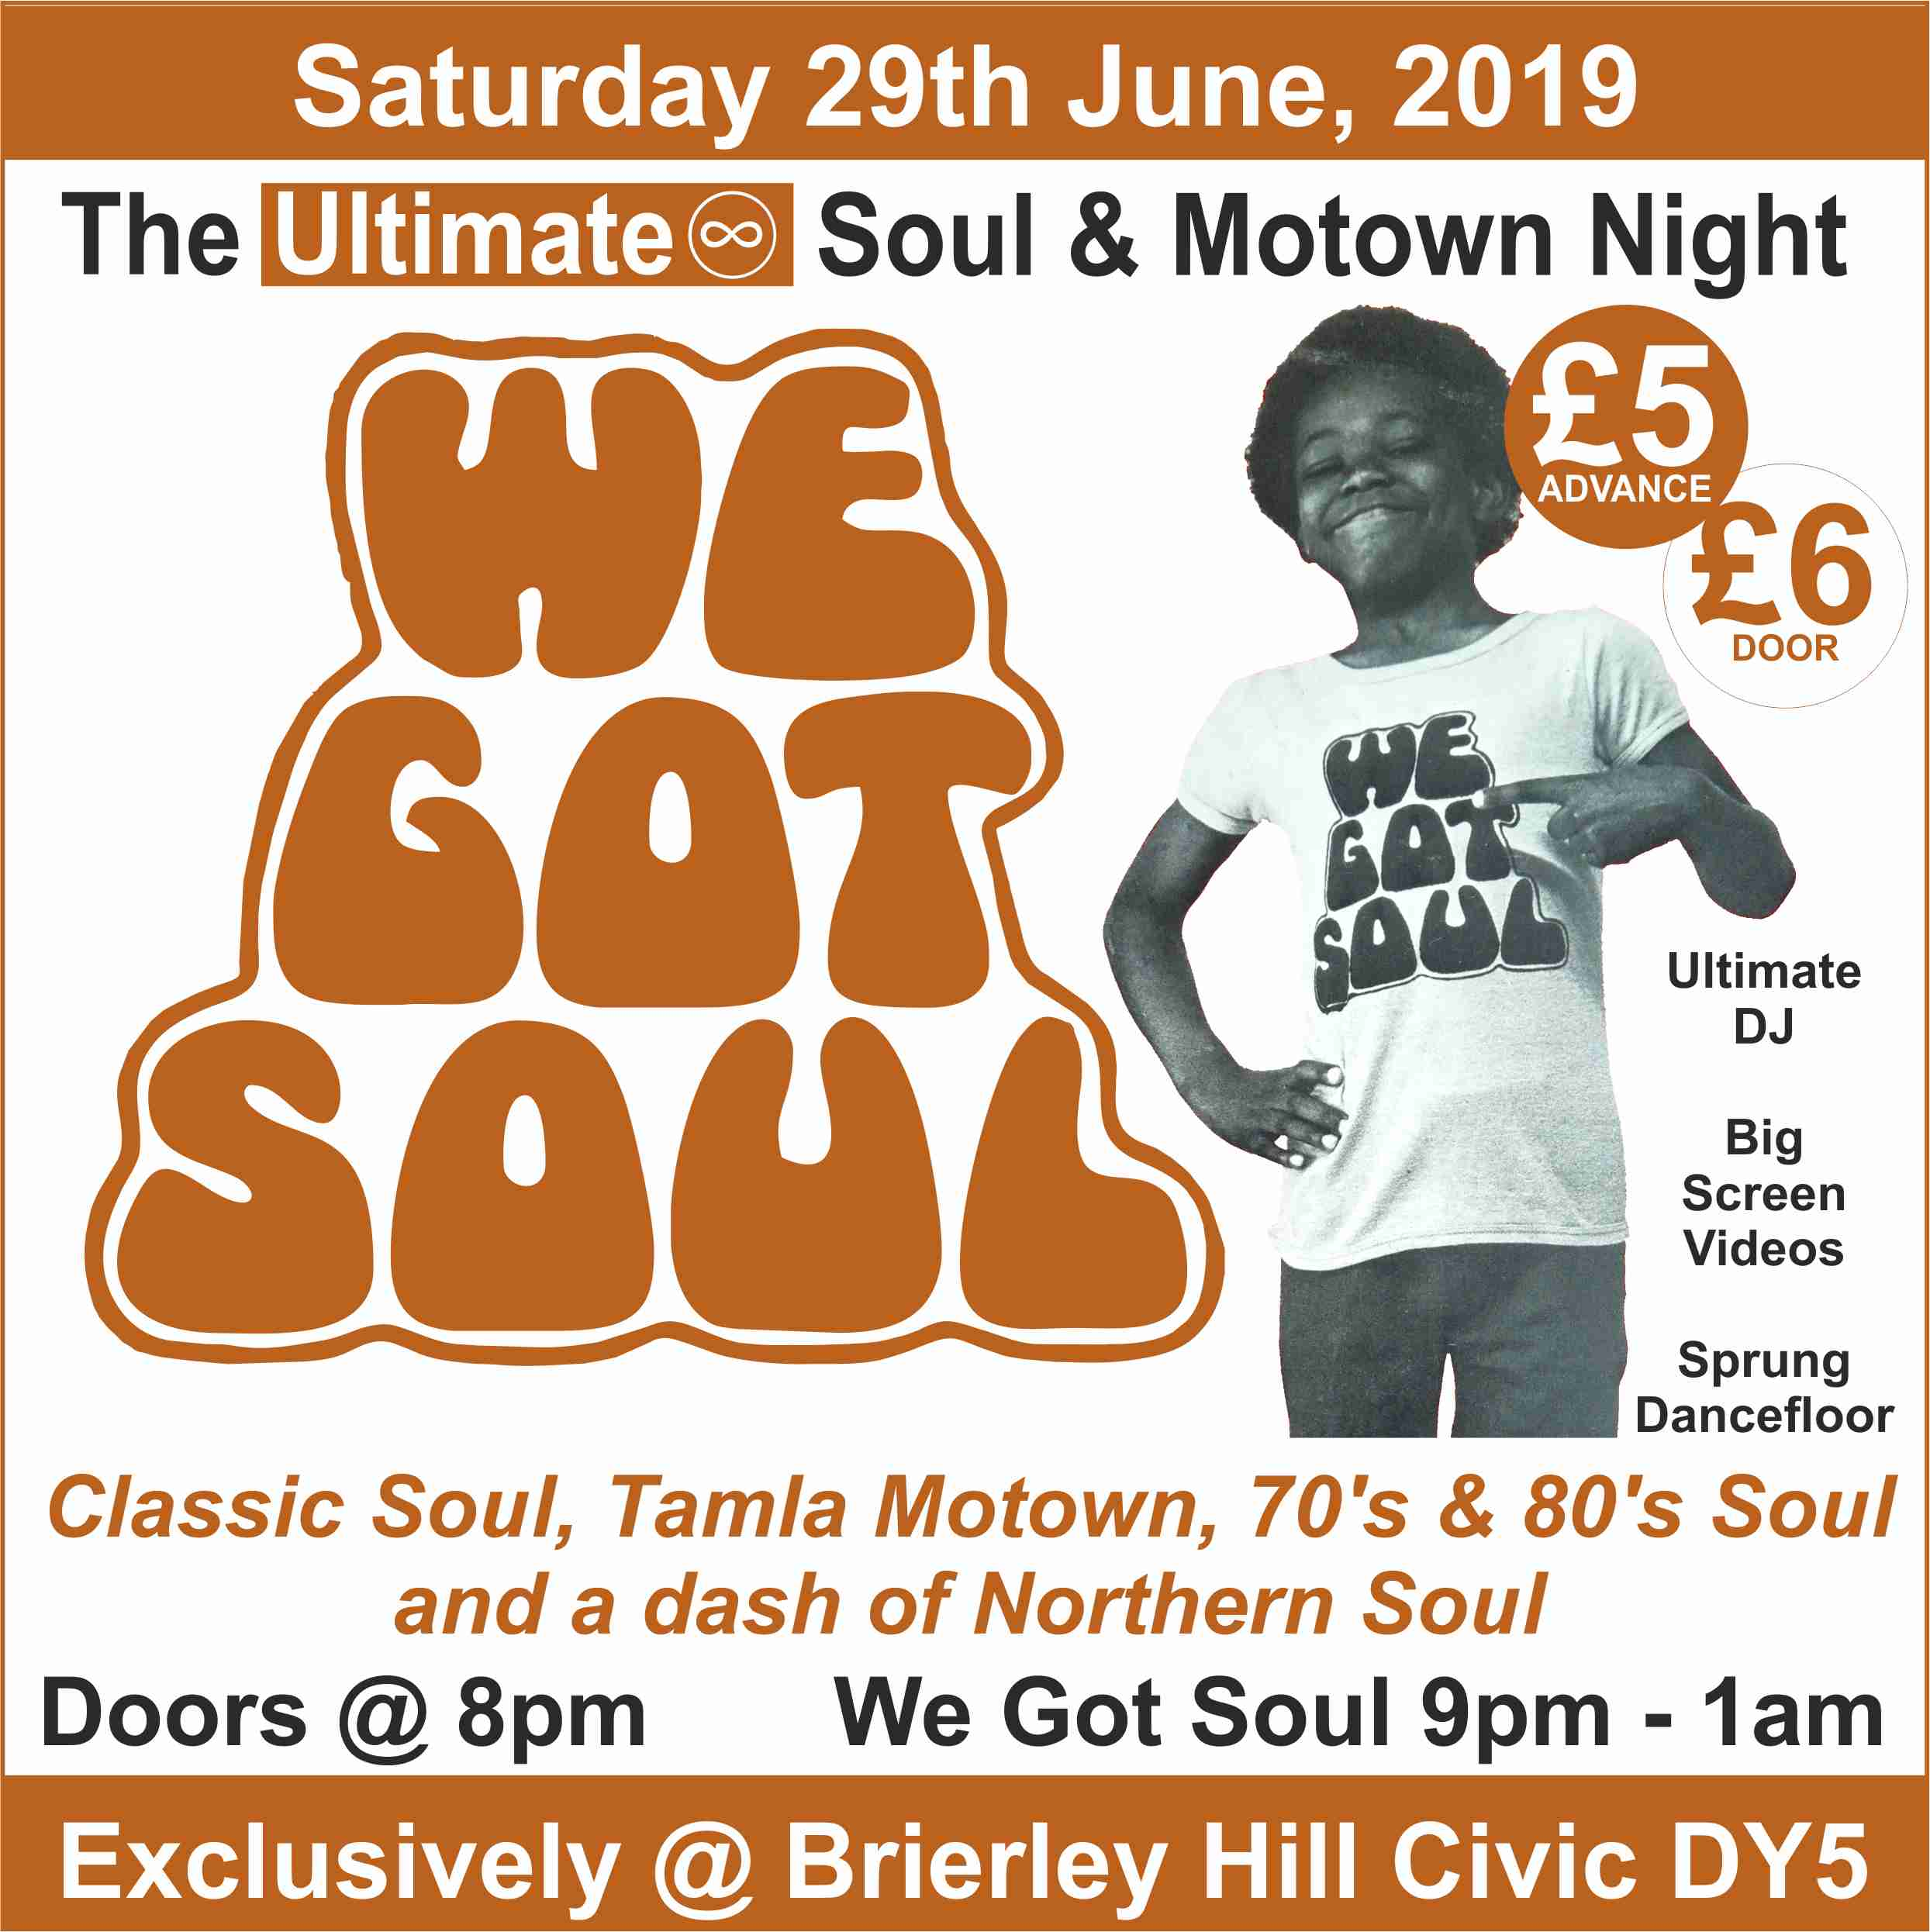 We Got Soul - The Ultimate Soul & Motown Night at Brierley Hill Civic Saturday 29th June 2019 banner image